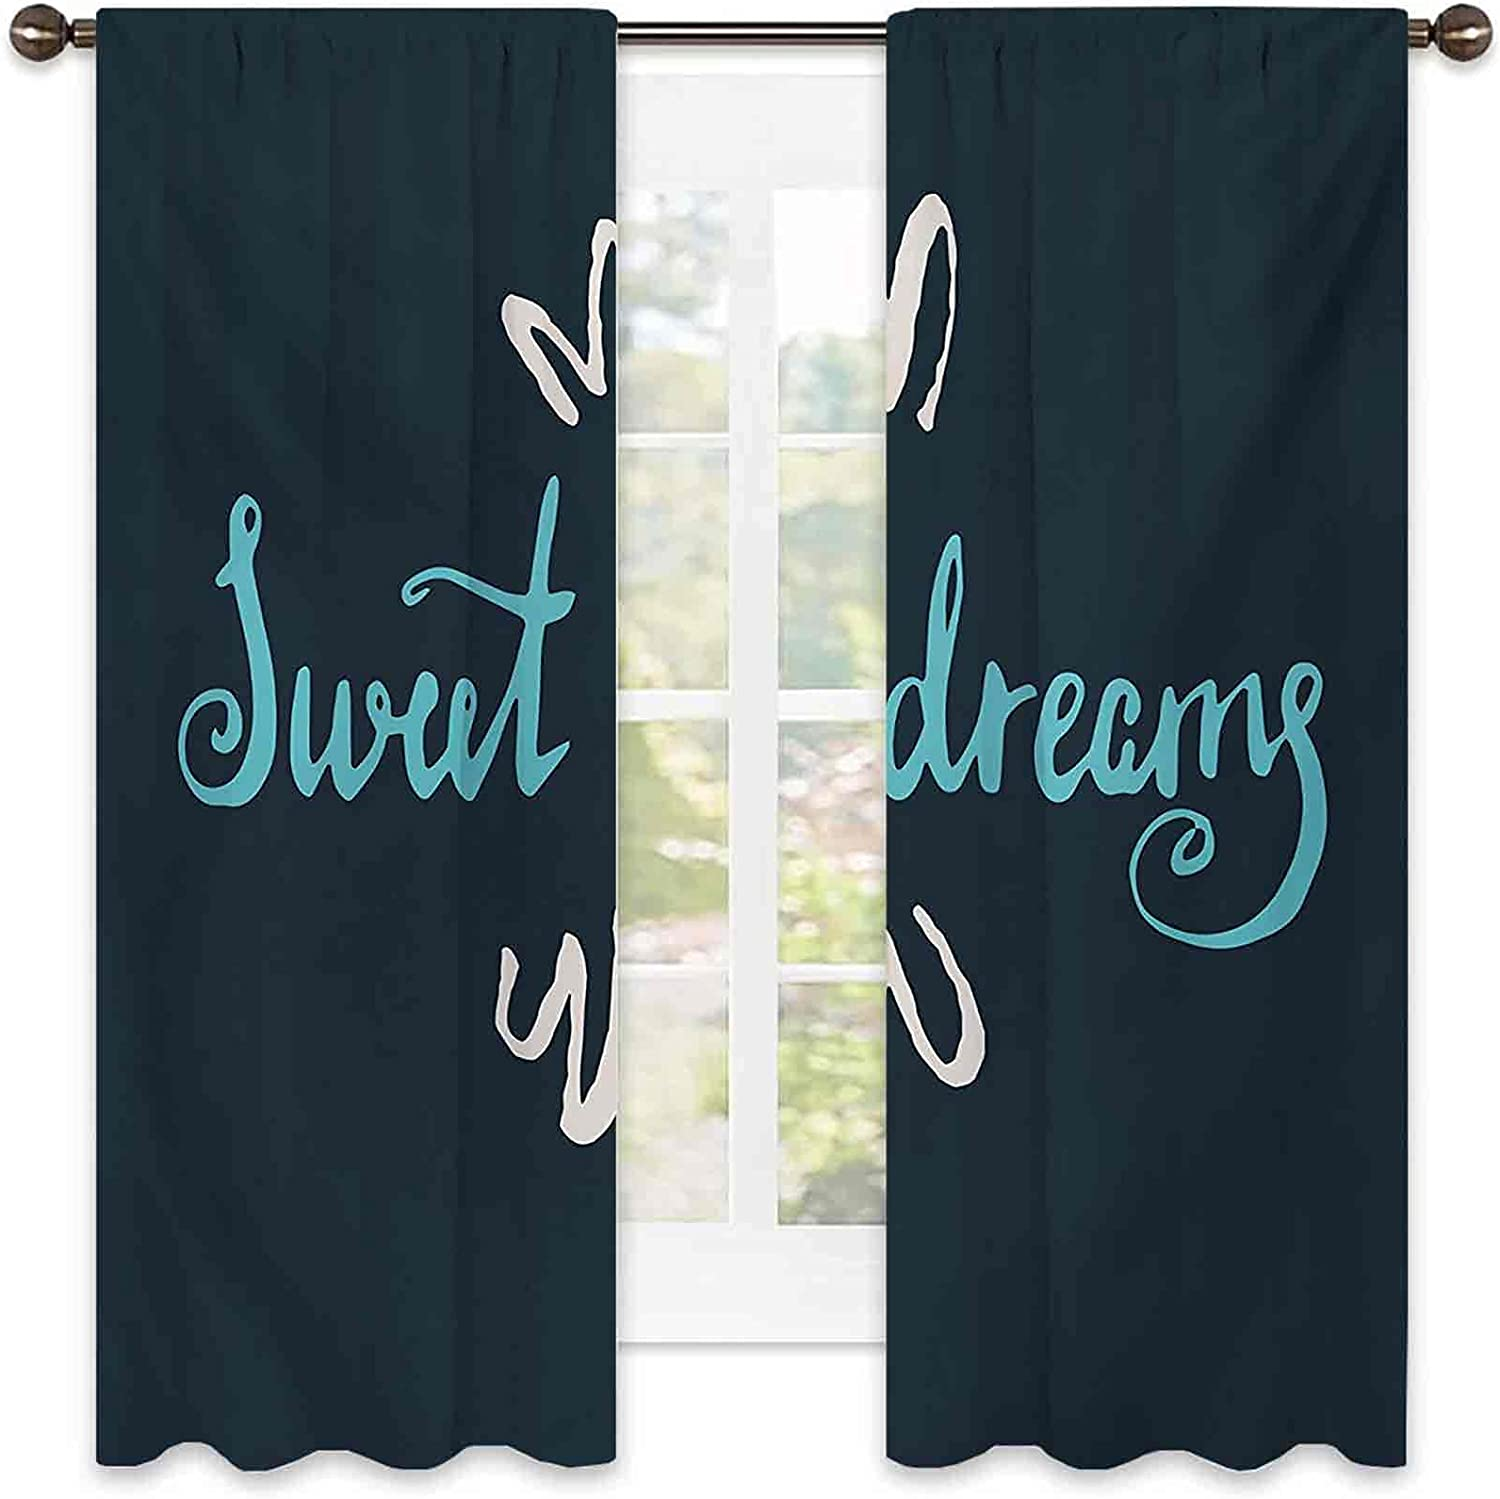 90% Blackout Sweet Max 57% OFF Dreams Curtains Drawn Hand Modern Style Lett Cheap super special price